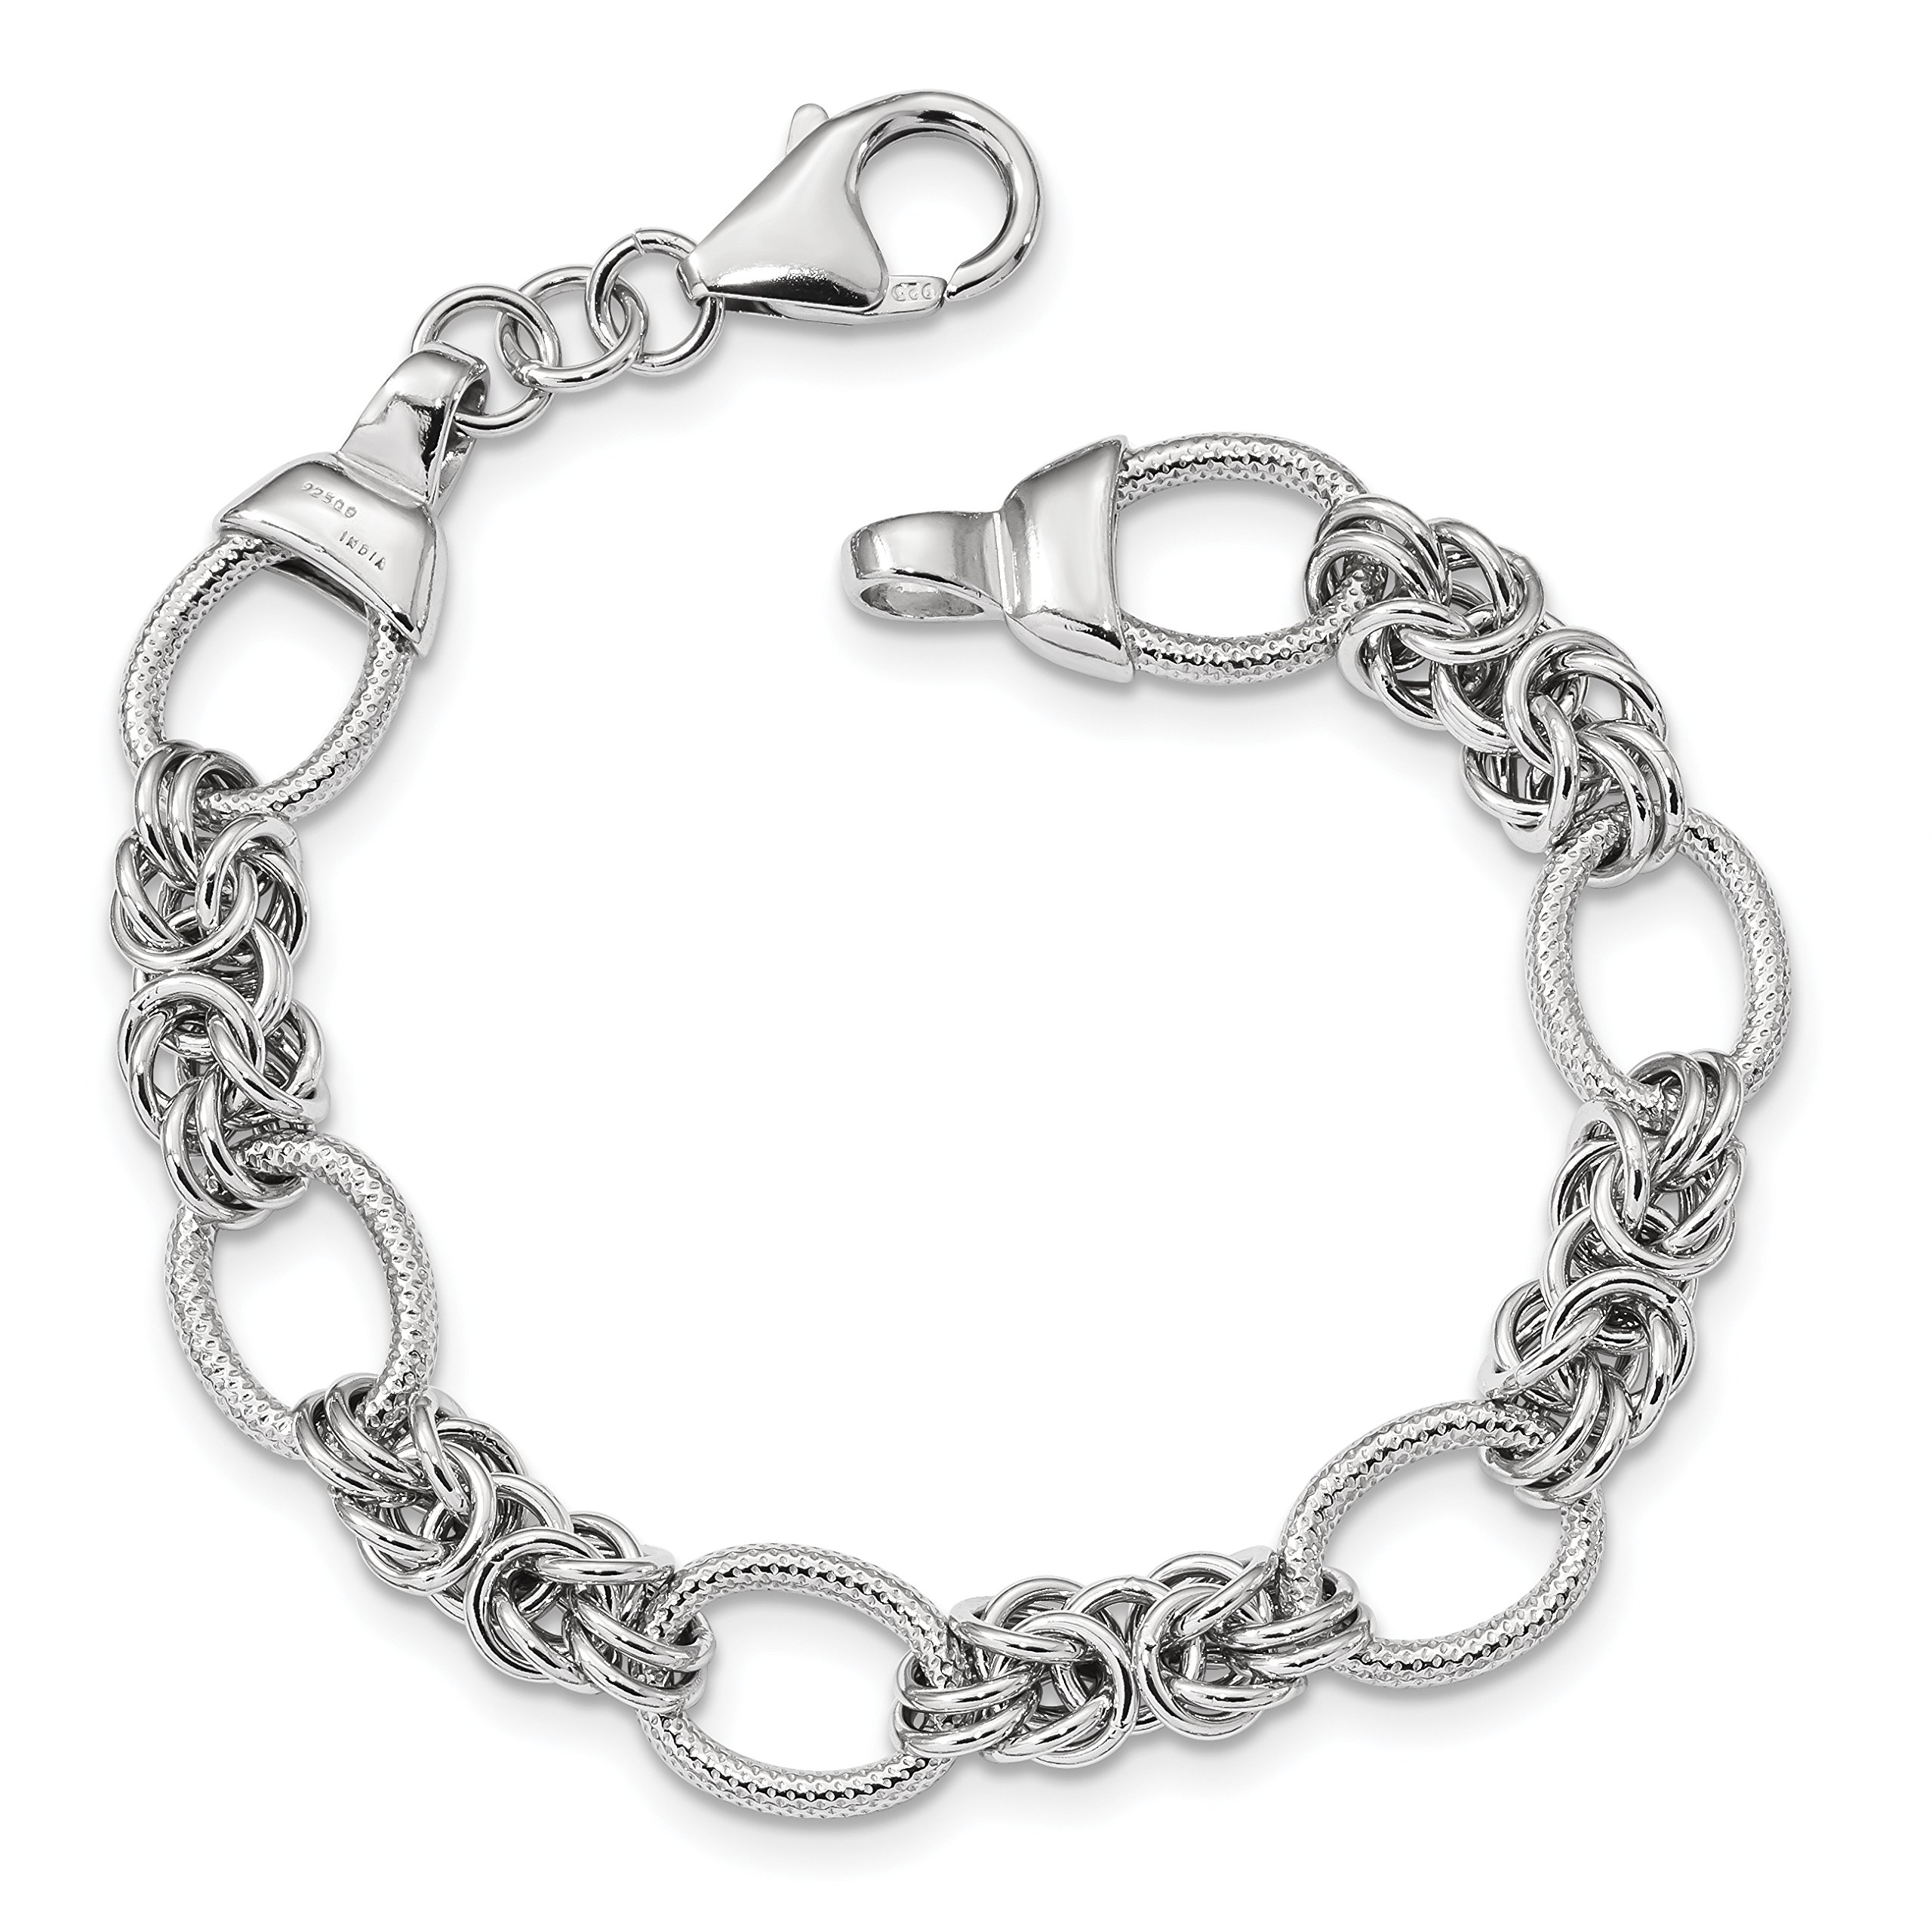 ICE CARATS 925 Sterling Silver Textured Link Bracelet 7.50 Inch Chain Fancy Fine Jewelry Gift Set For Women Heart